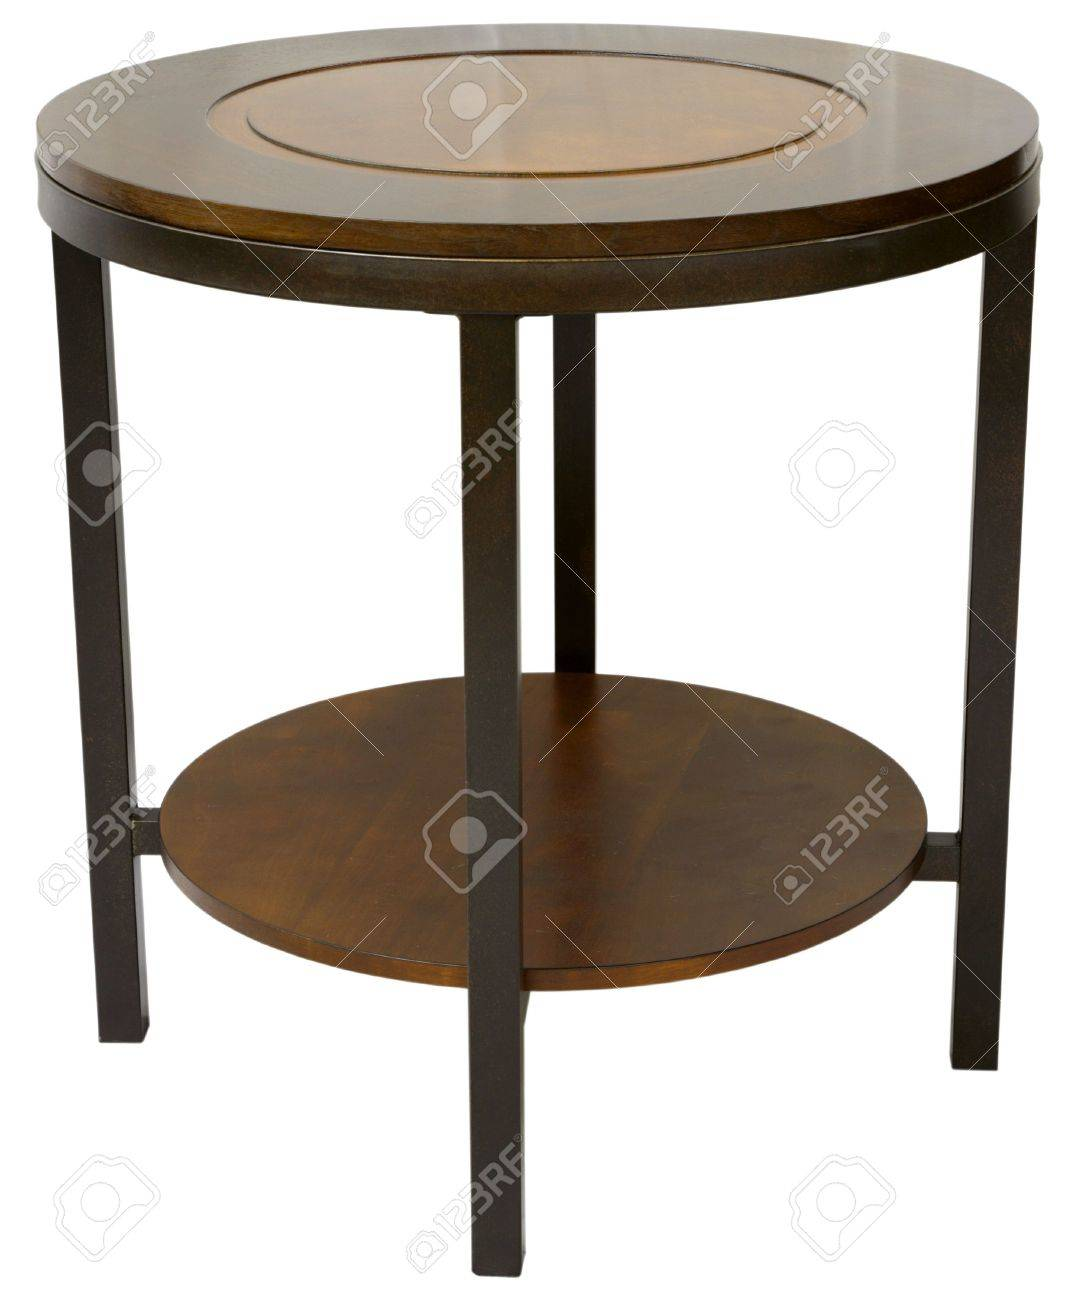 round wood and metal contemporary end table stock photo picture  - round wood and metal contemporary end table stock photo